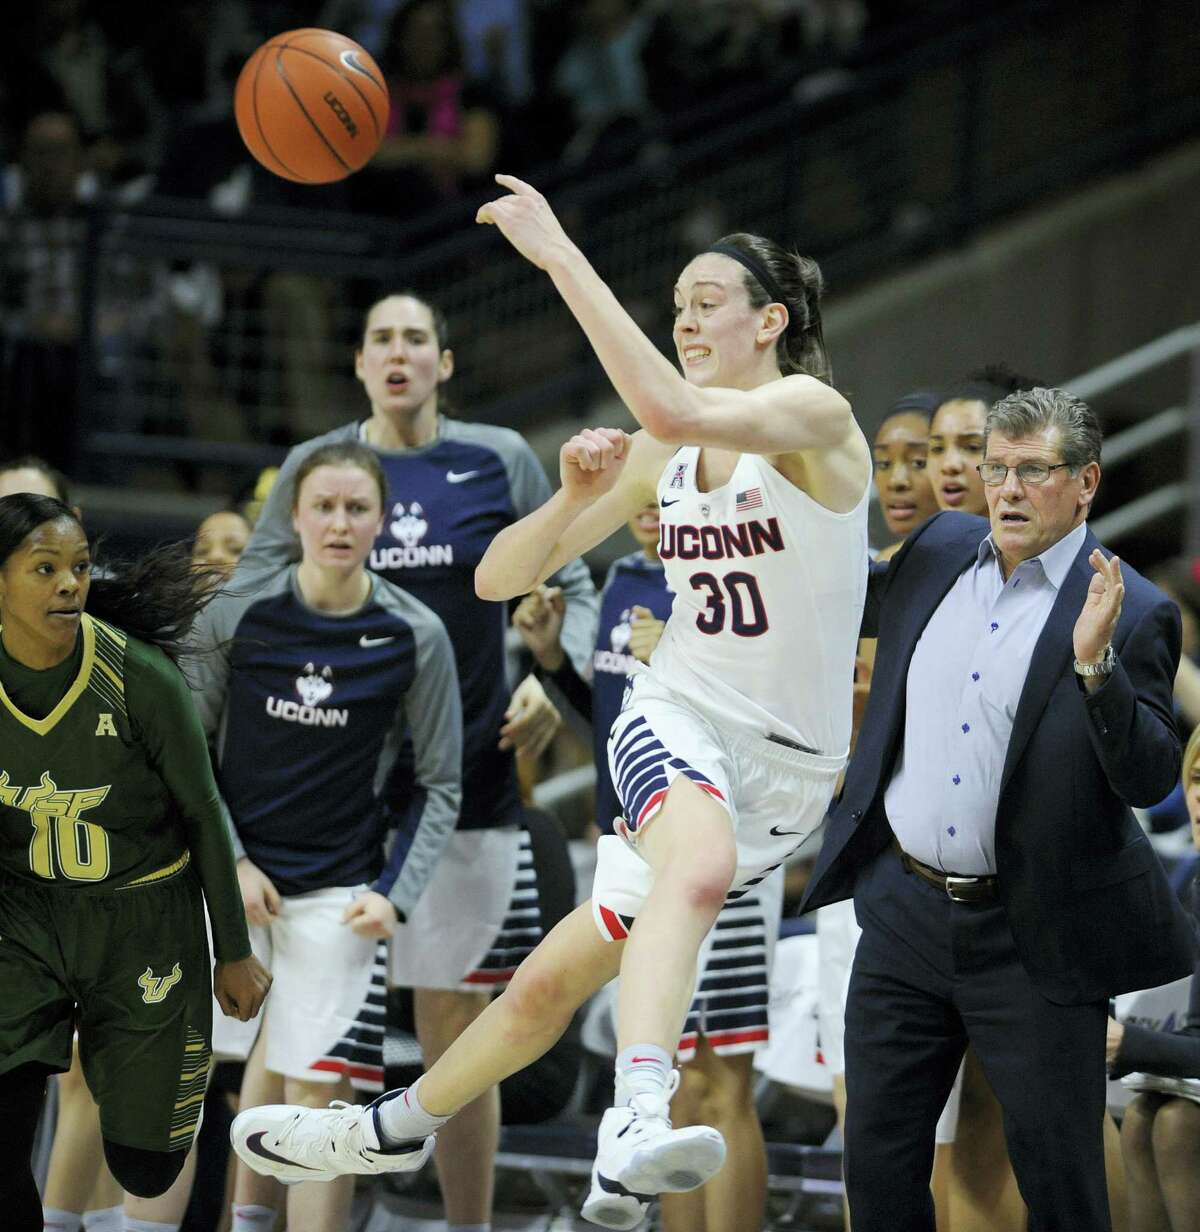 Connecticut's Breanna Stewart keeps the photo inbounds as head coach Geno Auriemma, right, and South Florida's Courtney Williams, left, look on, in the first half of an NCAA college basketball game Monday, Feb. 29, 2016, in Storrs, Conn. (AP Photo/Jessica Hill)